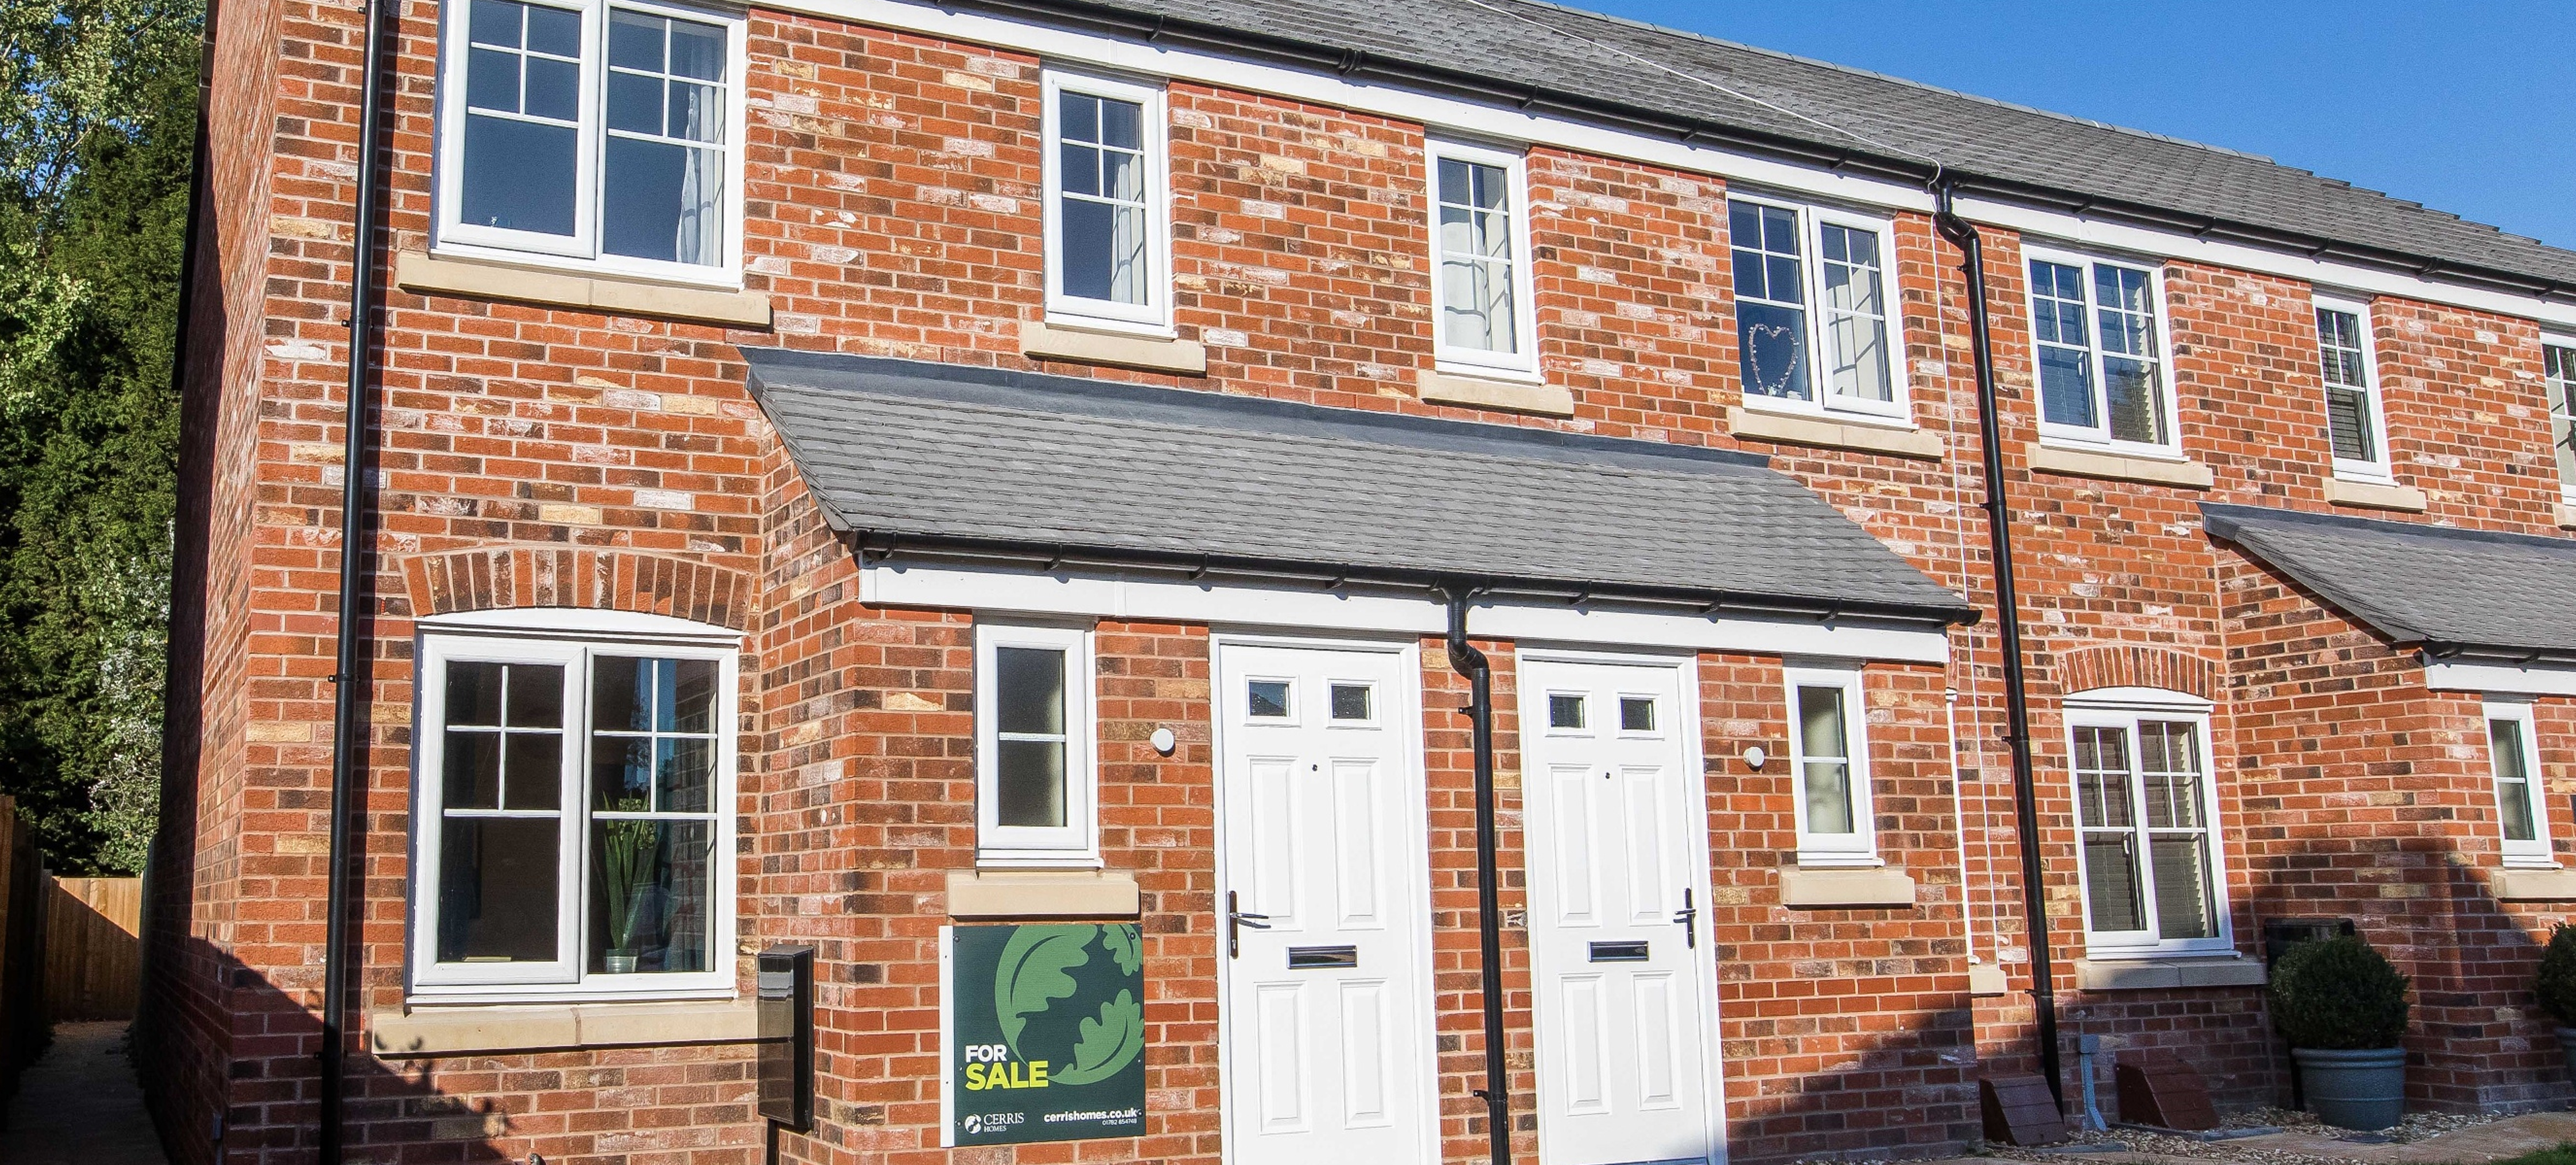 A parent's guide to shared ownership - Case study